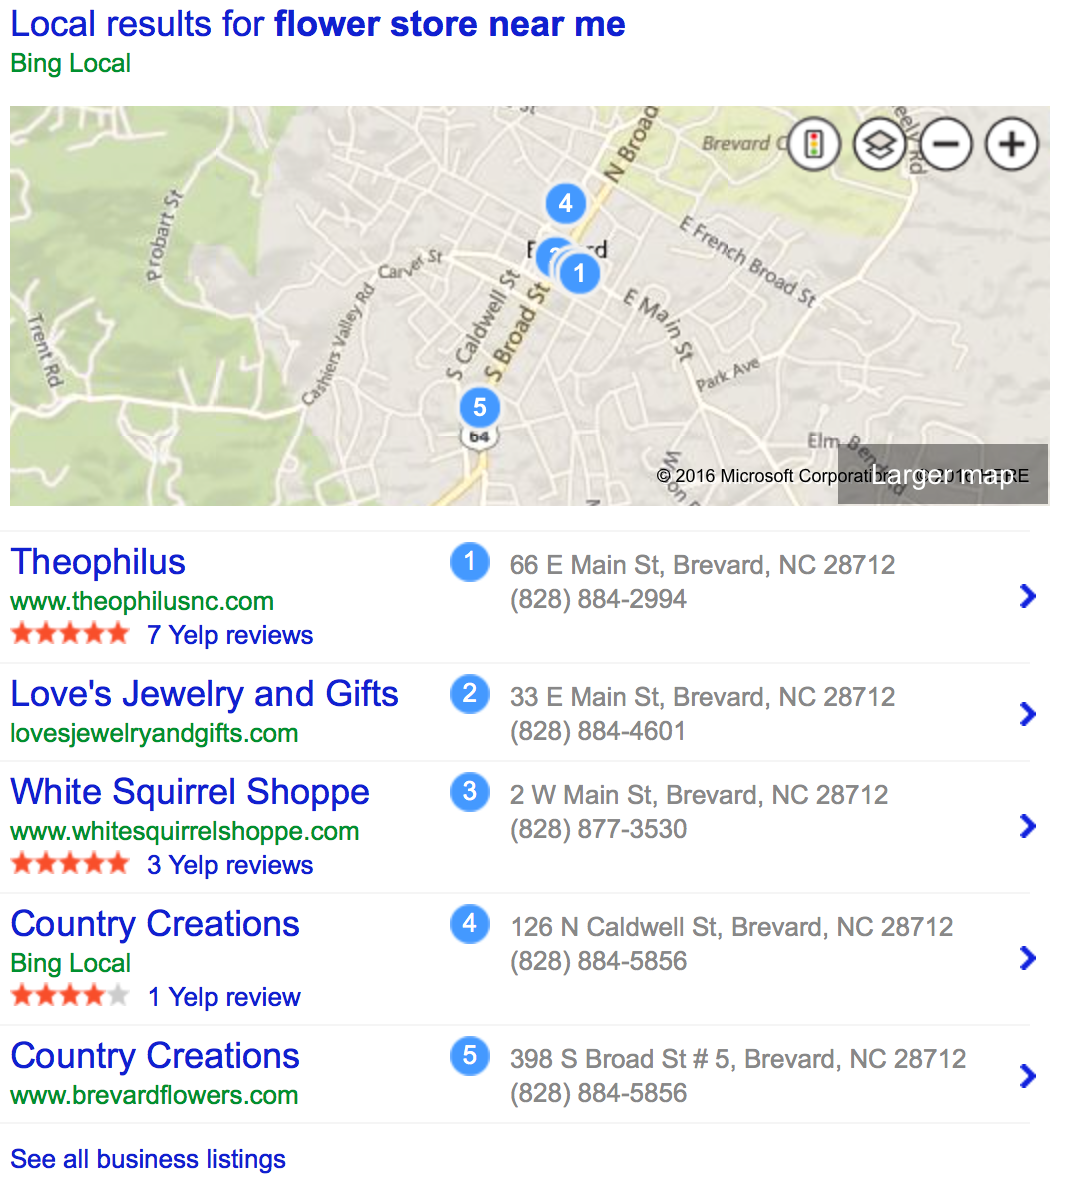 Local business listings from Bing local search